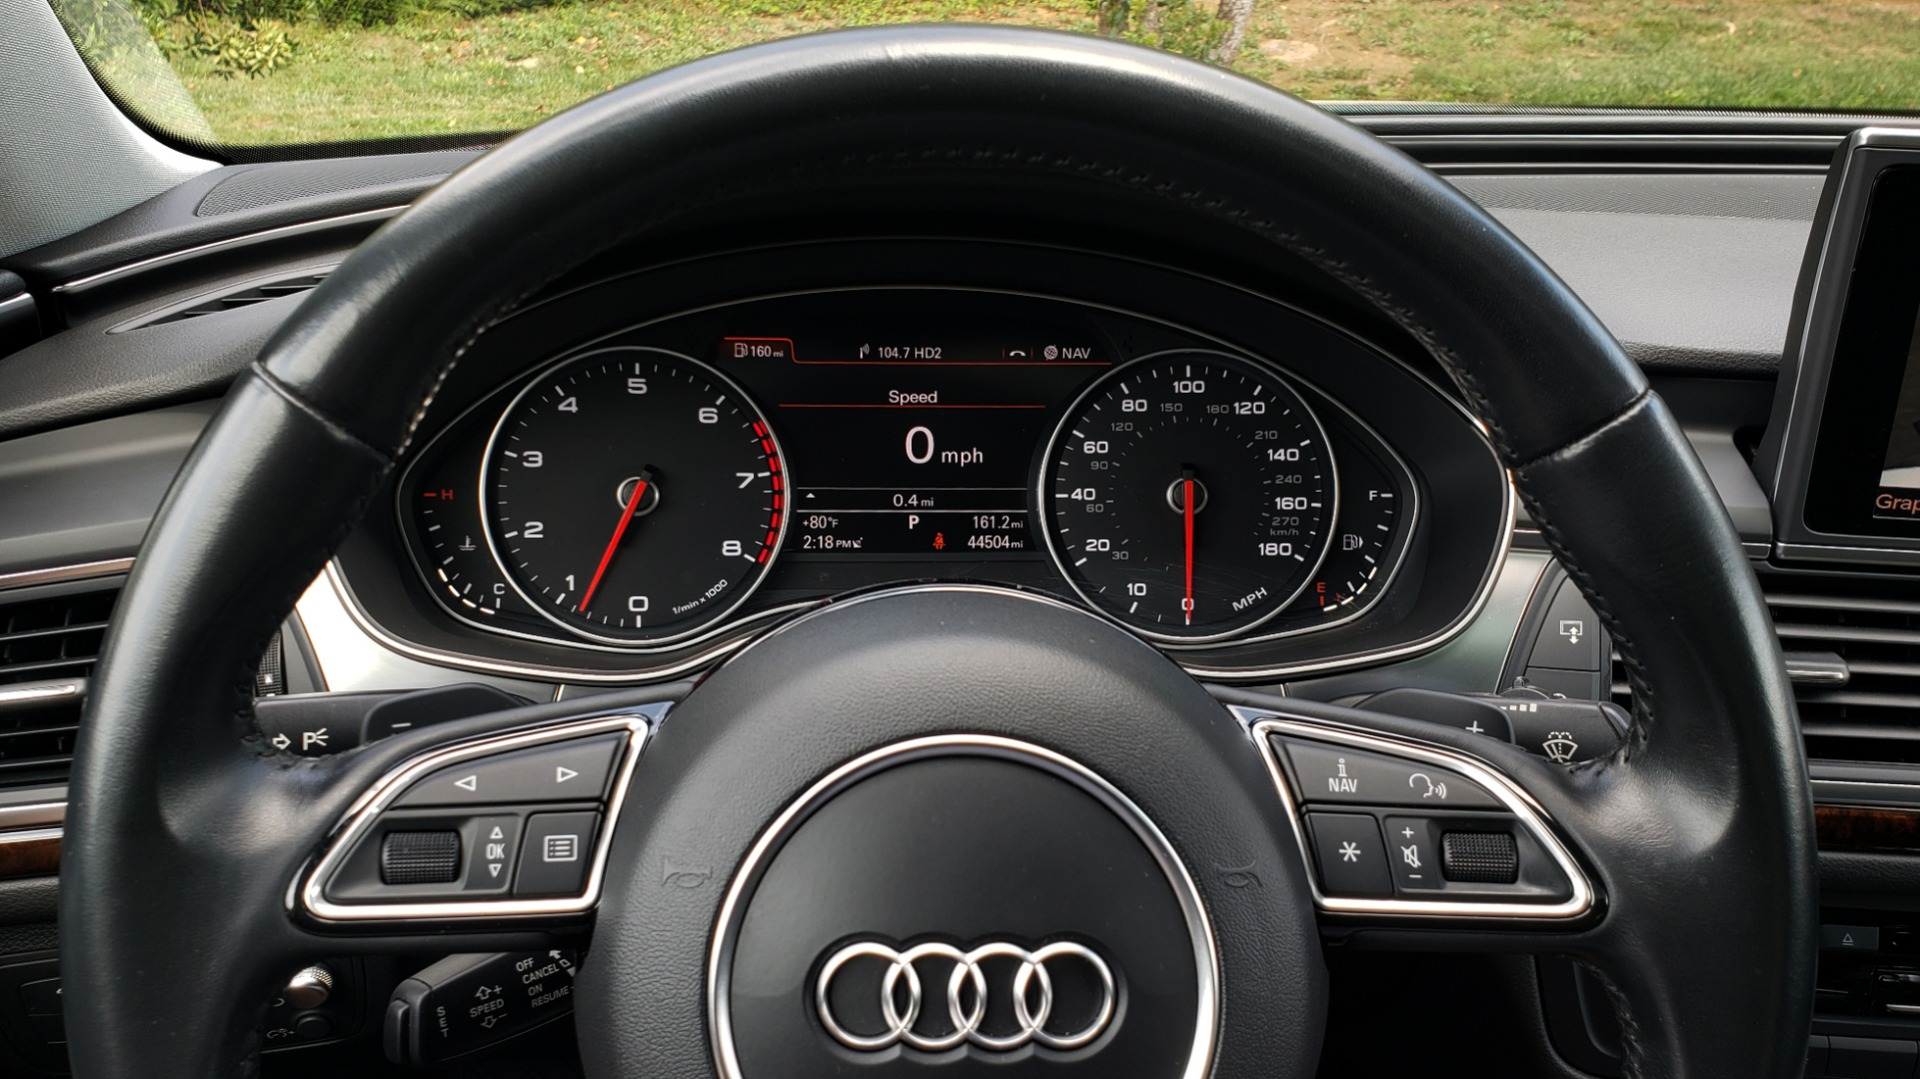 Used 2015 Audi A6 3.0T PRESTIGE / BLACK OPTIC / NAV / BOSE / SUNROOF / REARVIEW for sale Sold at Formula Imports in Charlotte NC 28227 50